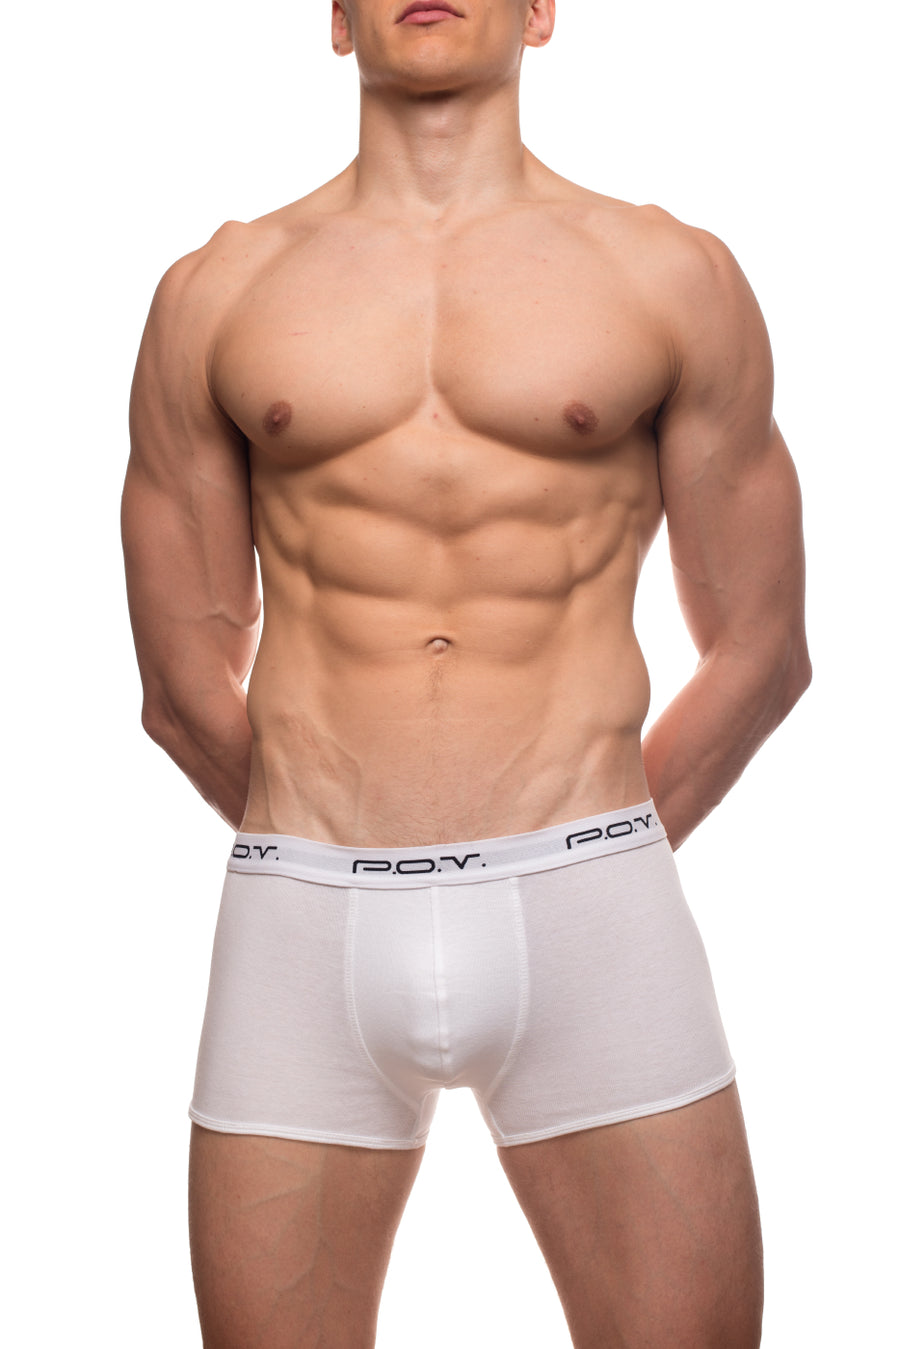 POV Boxer Brief